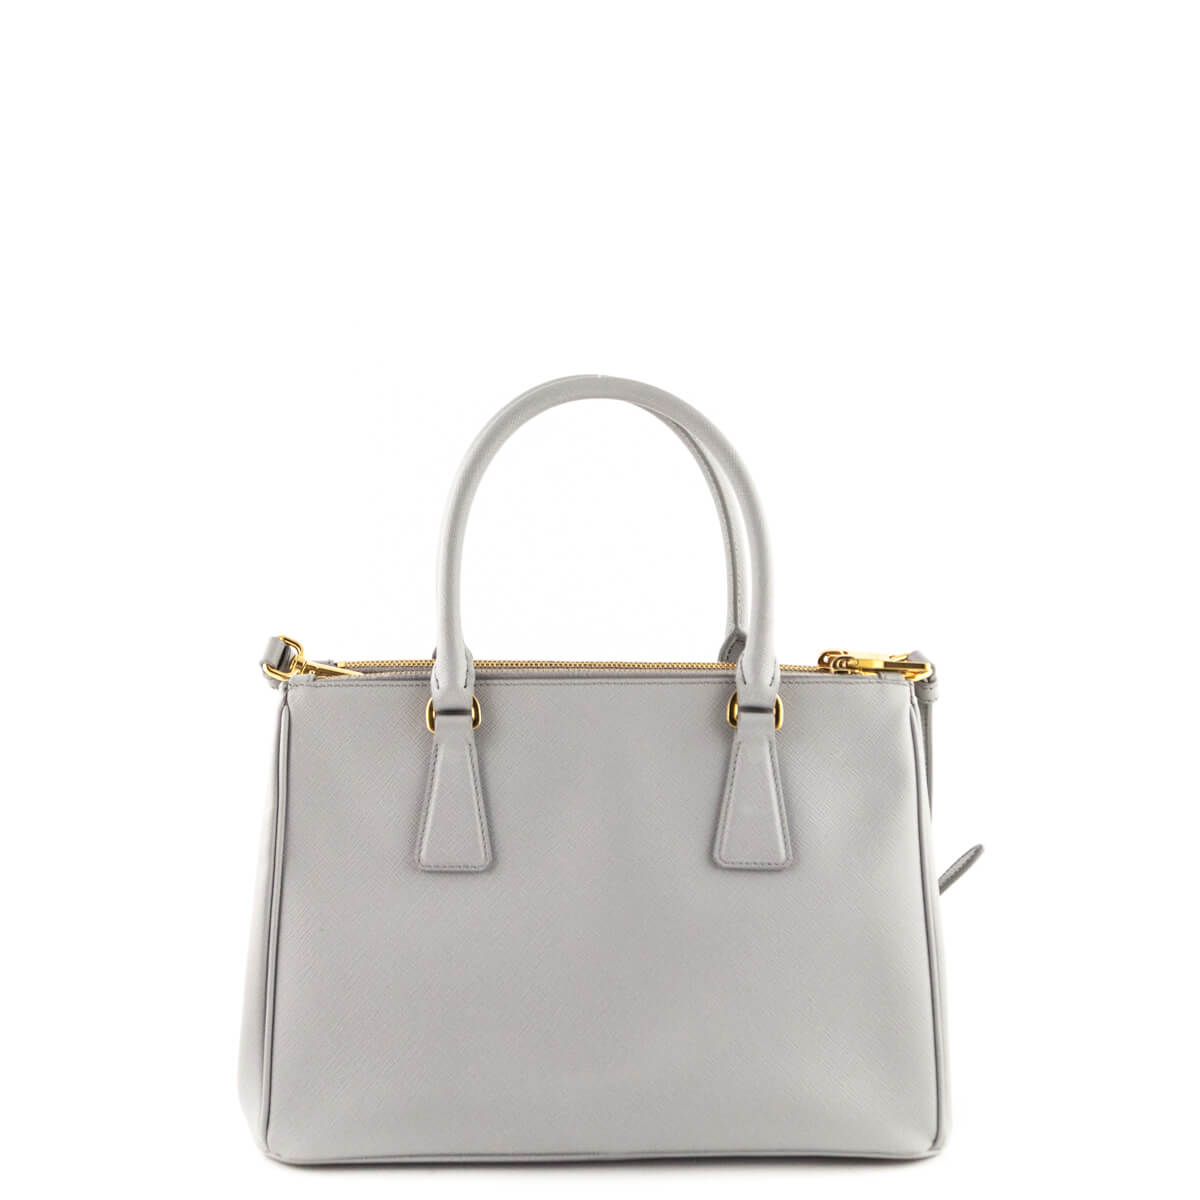 47ccead5ca2c ... france prada astral gray saffiano small galleria double zip lux tote  love that bag preowned 5cd3f